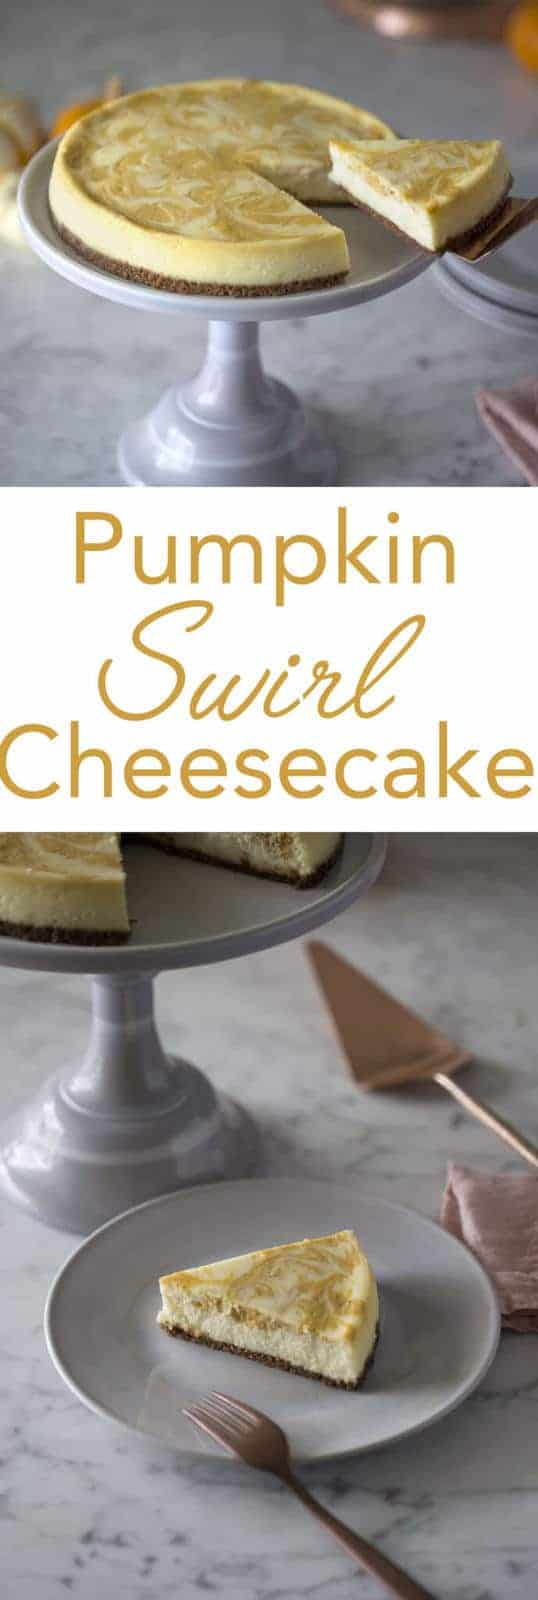 This cheesecake has a spiced to the crust and a great pumpkin swirl. Full recipe on preppykitchen.com